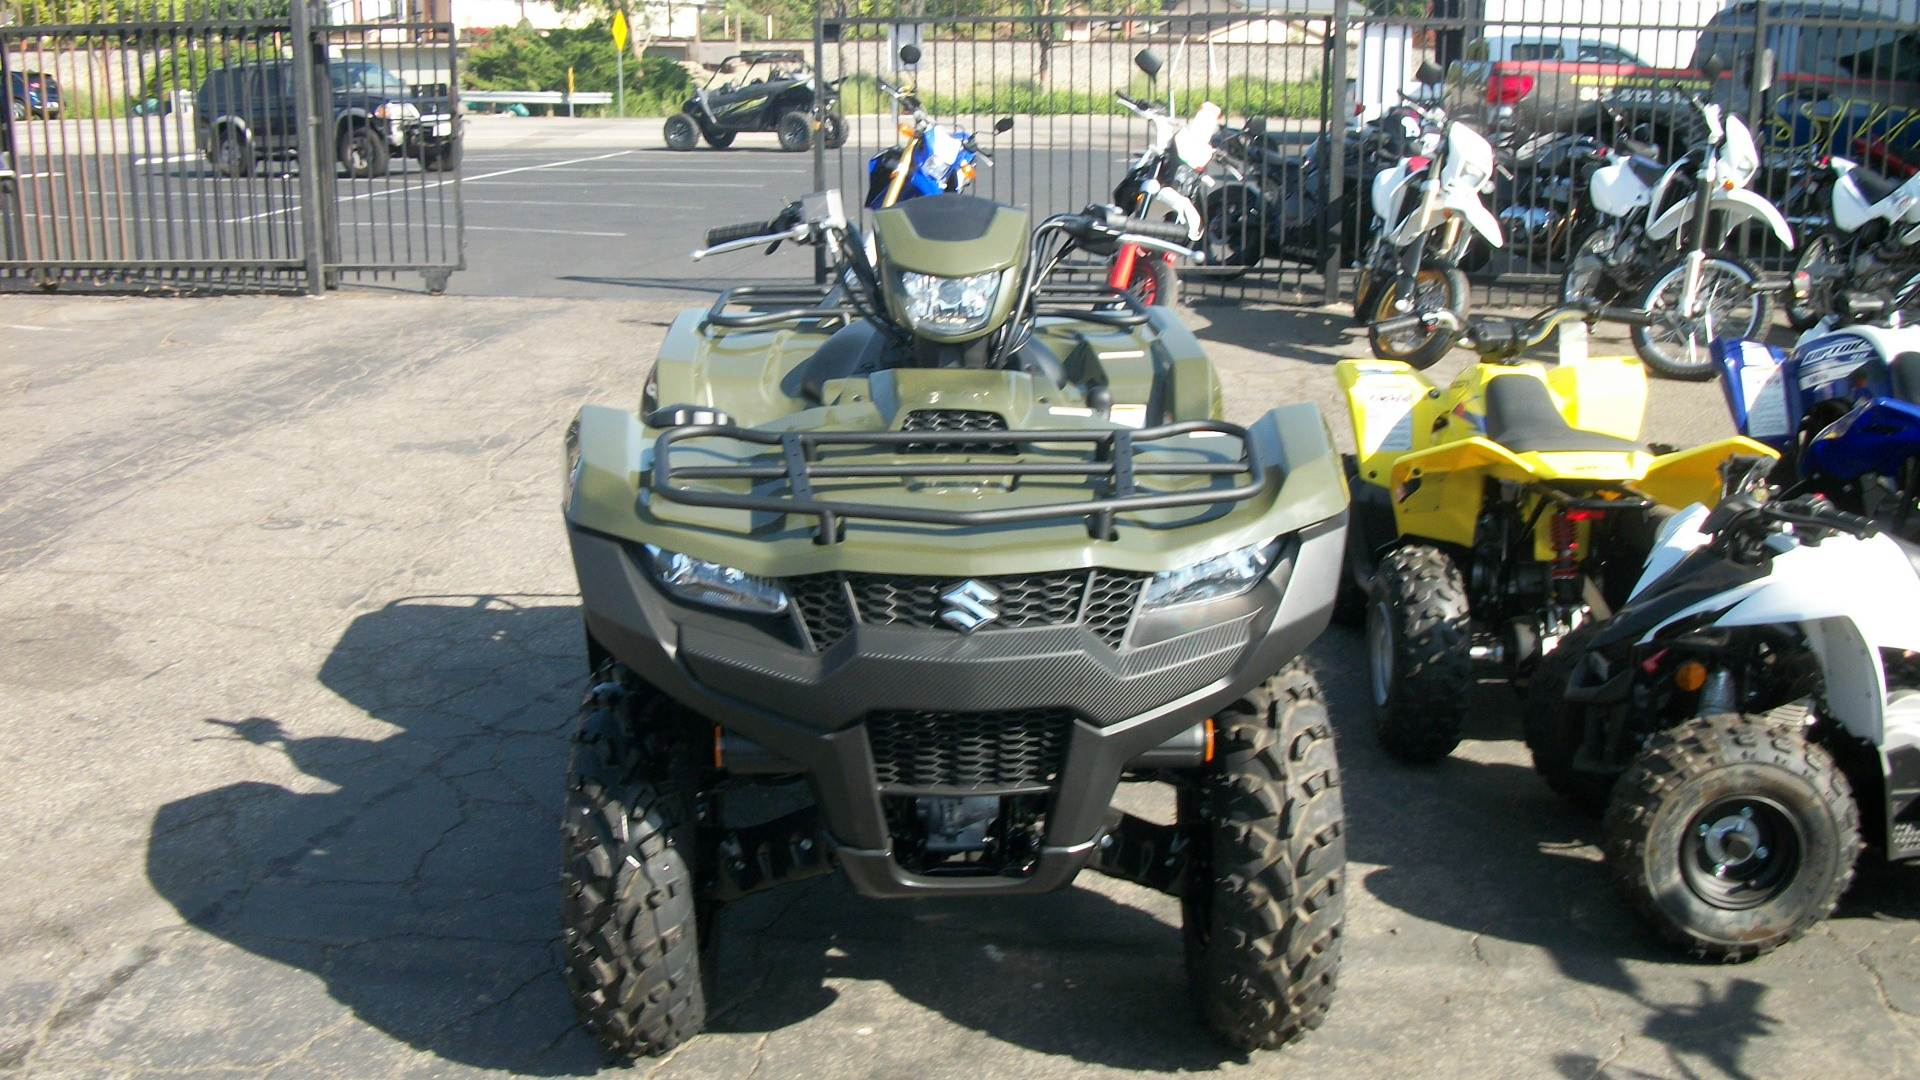 2019 Suzuki KingQuad 500AXi in Simi Valley, California - Photo 4